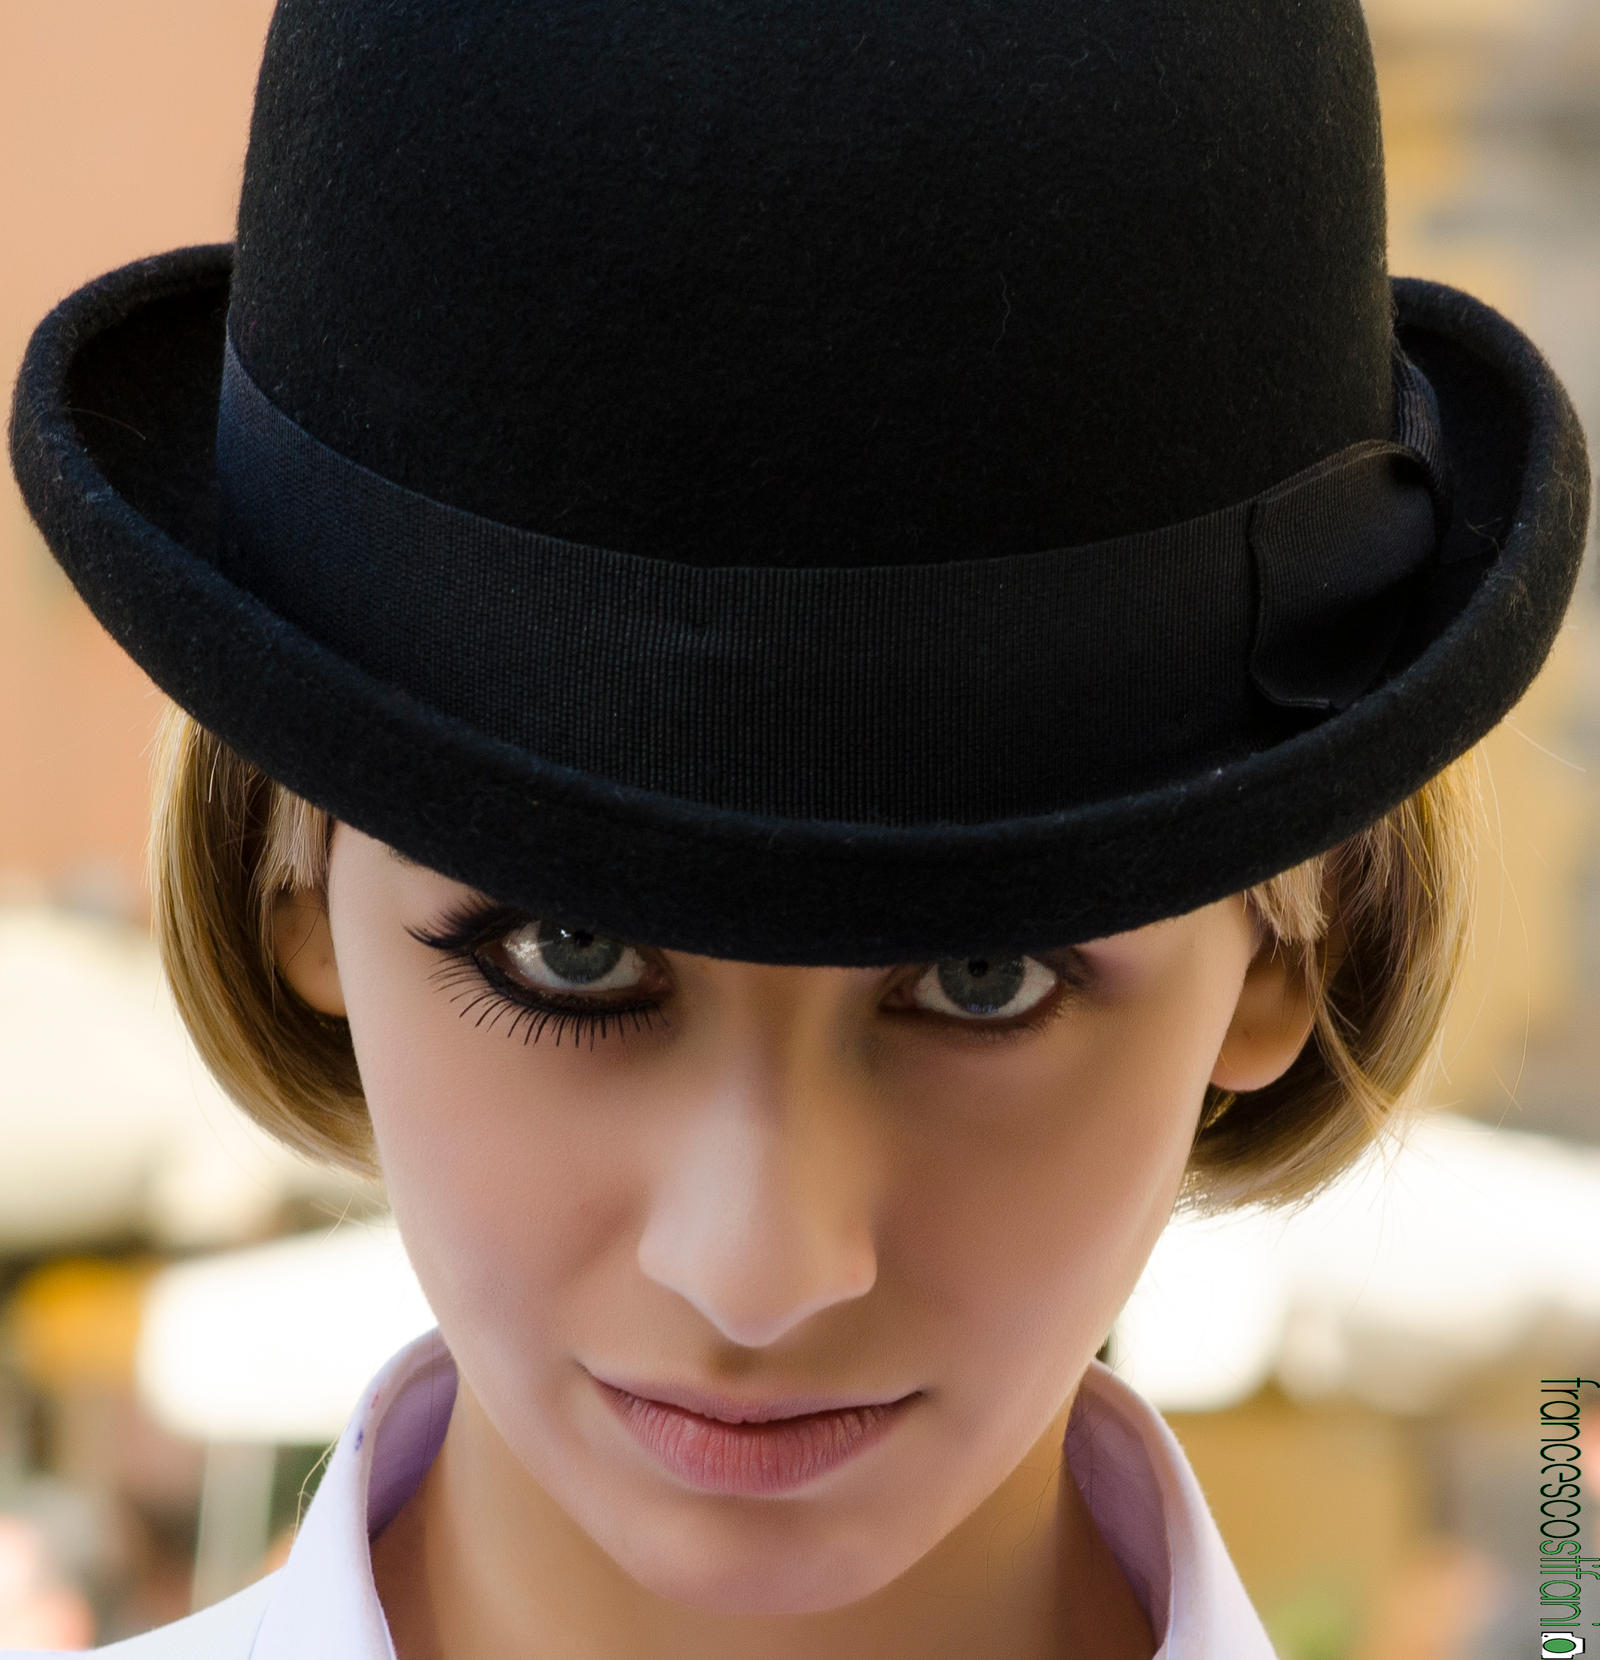 Alex DeLarge from A ClockWork Orange by pchanFM on DeviantArt